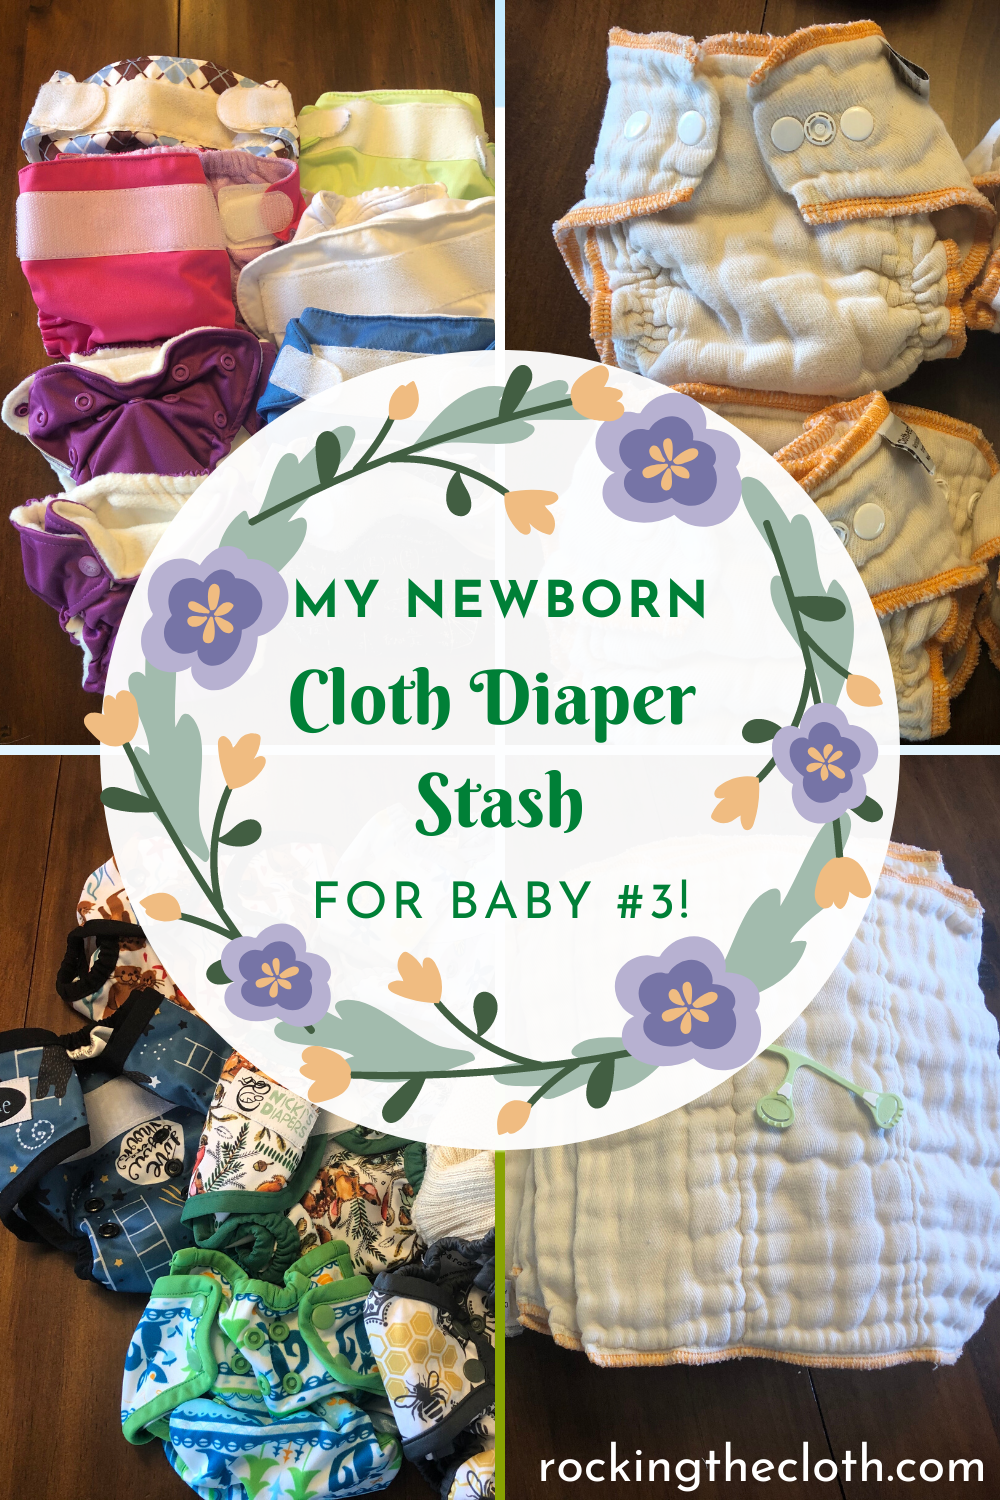 My Newborn Cloth Diaper Stash – Diapering from 5-10 lbs